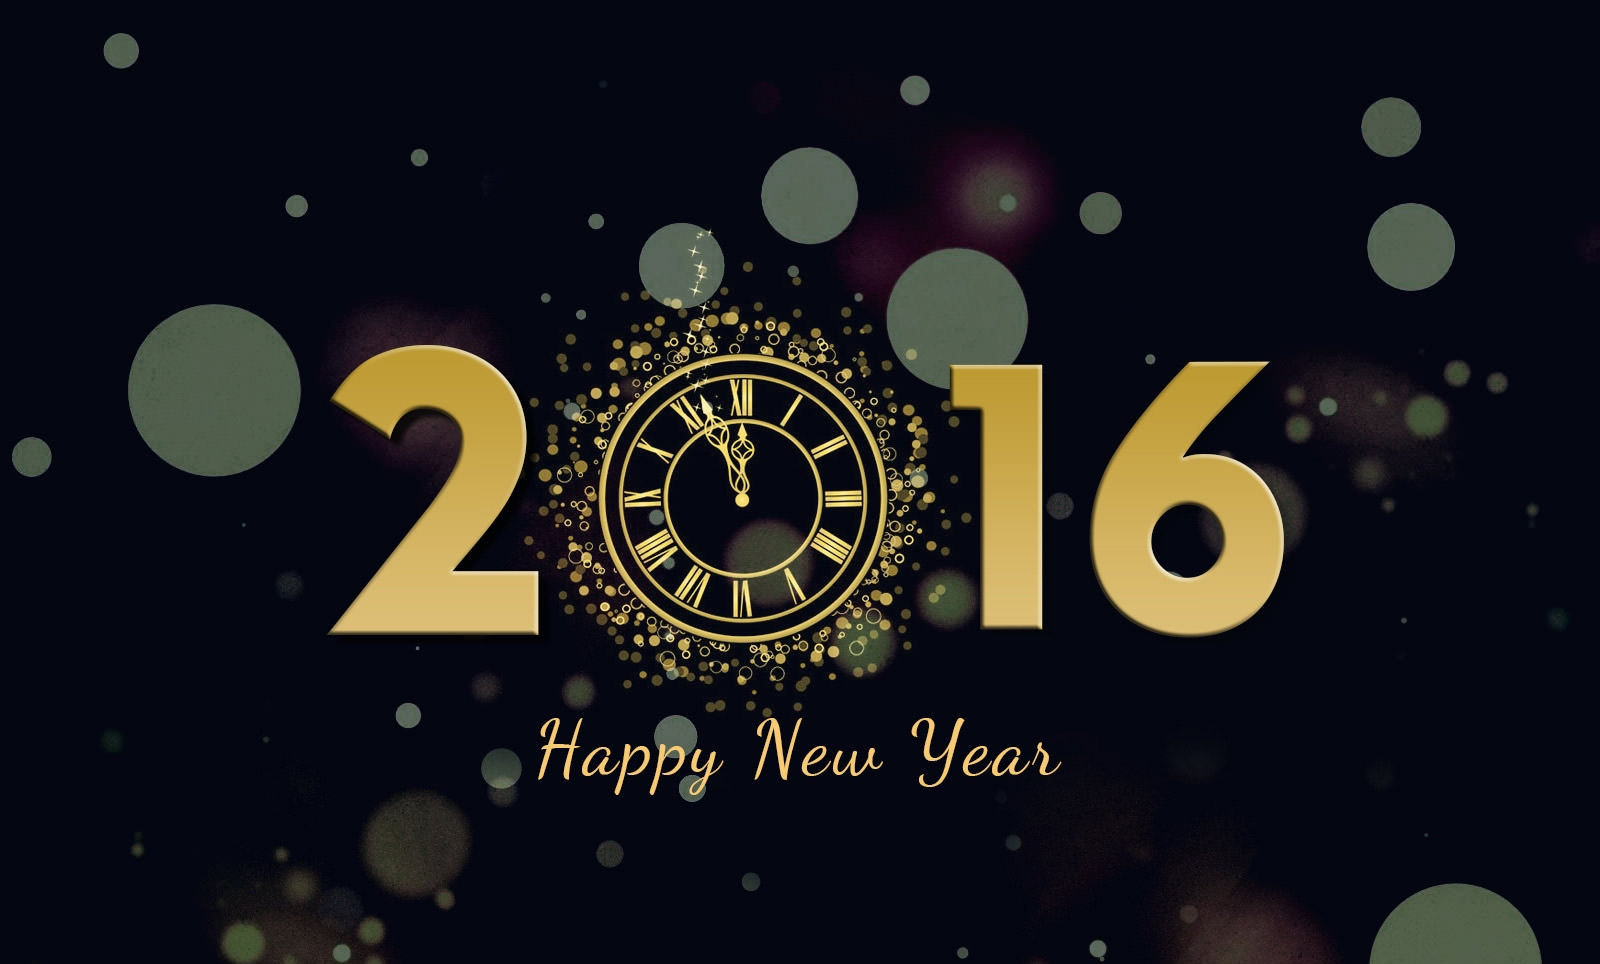 new year 2016 wallpaper free download for desktop